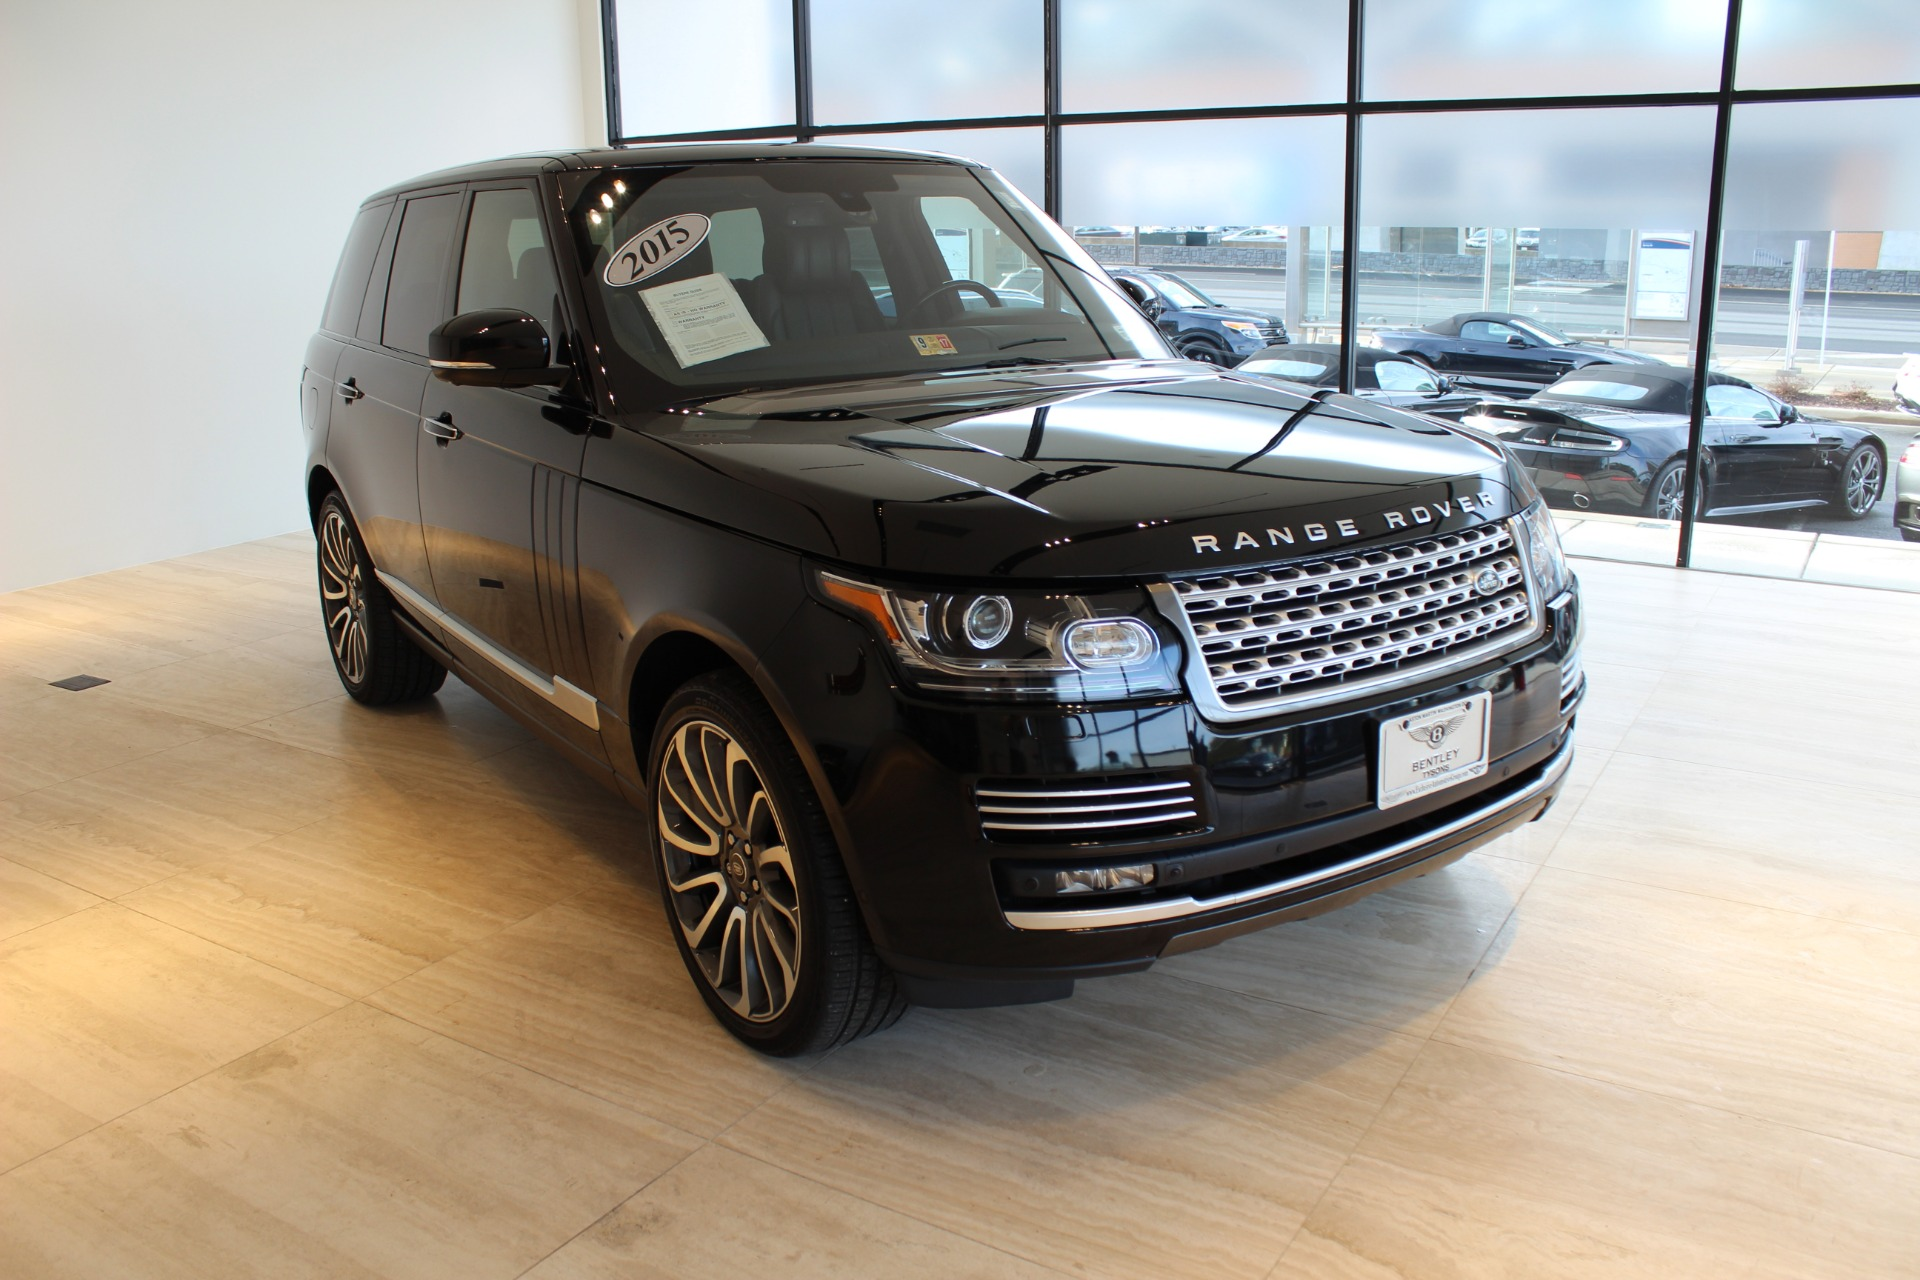 2015 Land Rover Range Rover Autobiography Stock 7N A for sale